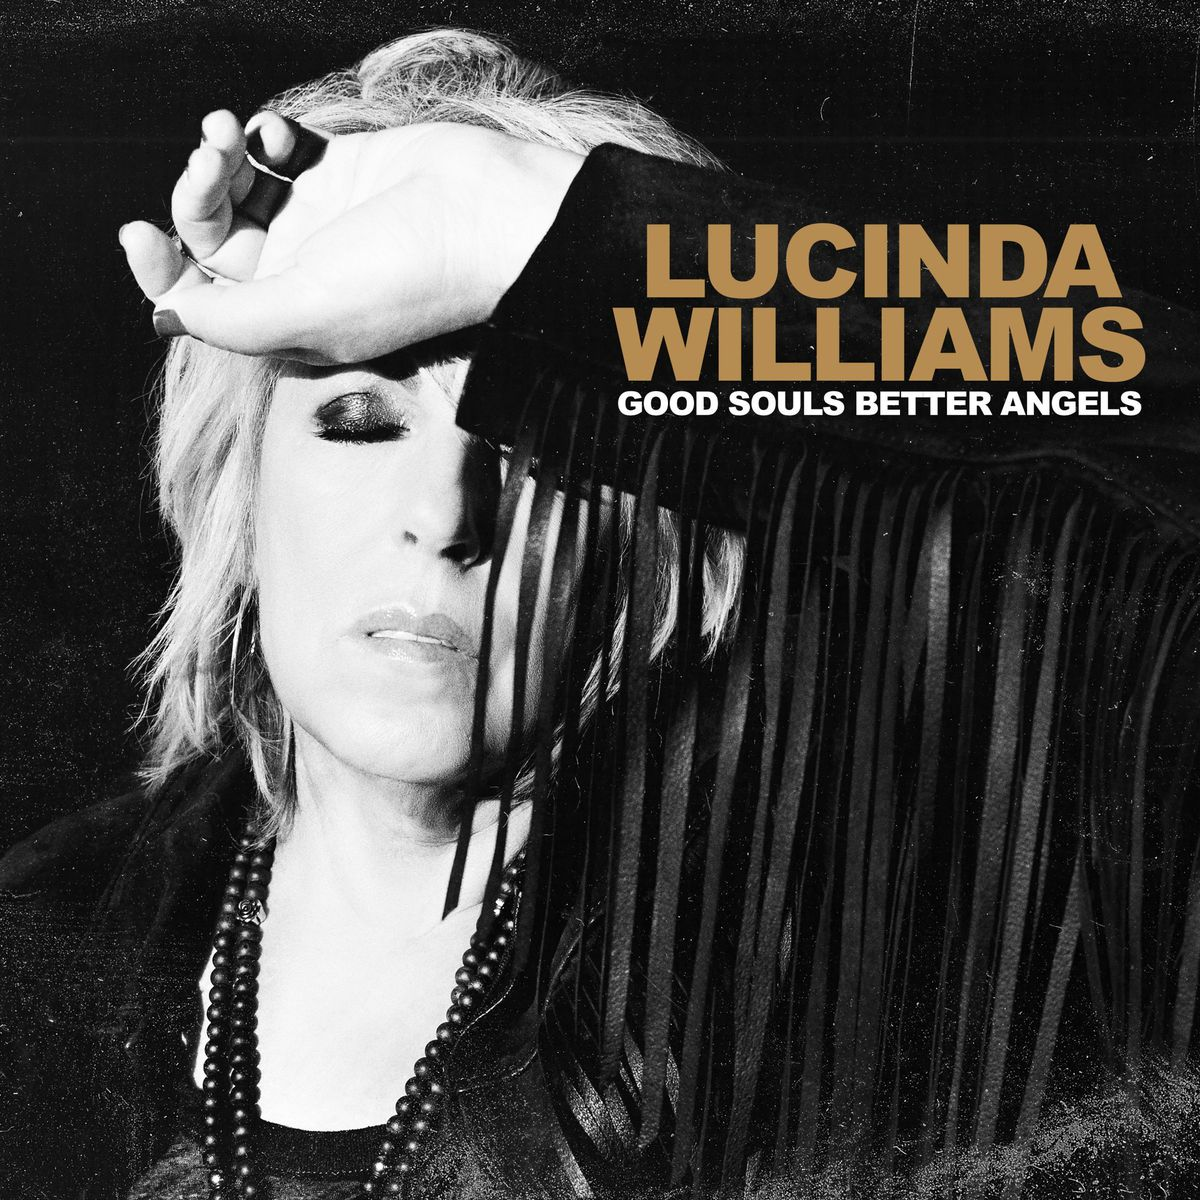 """This cover image released by Highway 20/Thirty Tigers shows """"Good Souls Better Angels"""" by Lucinda Williams."""